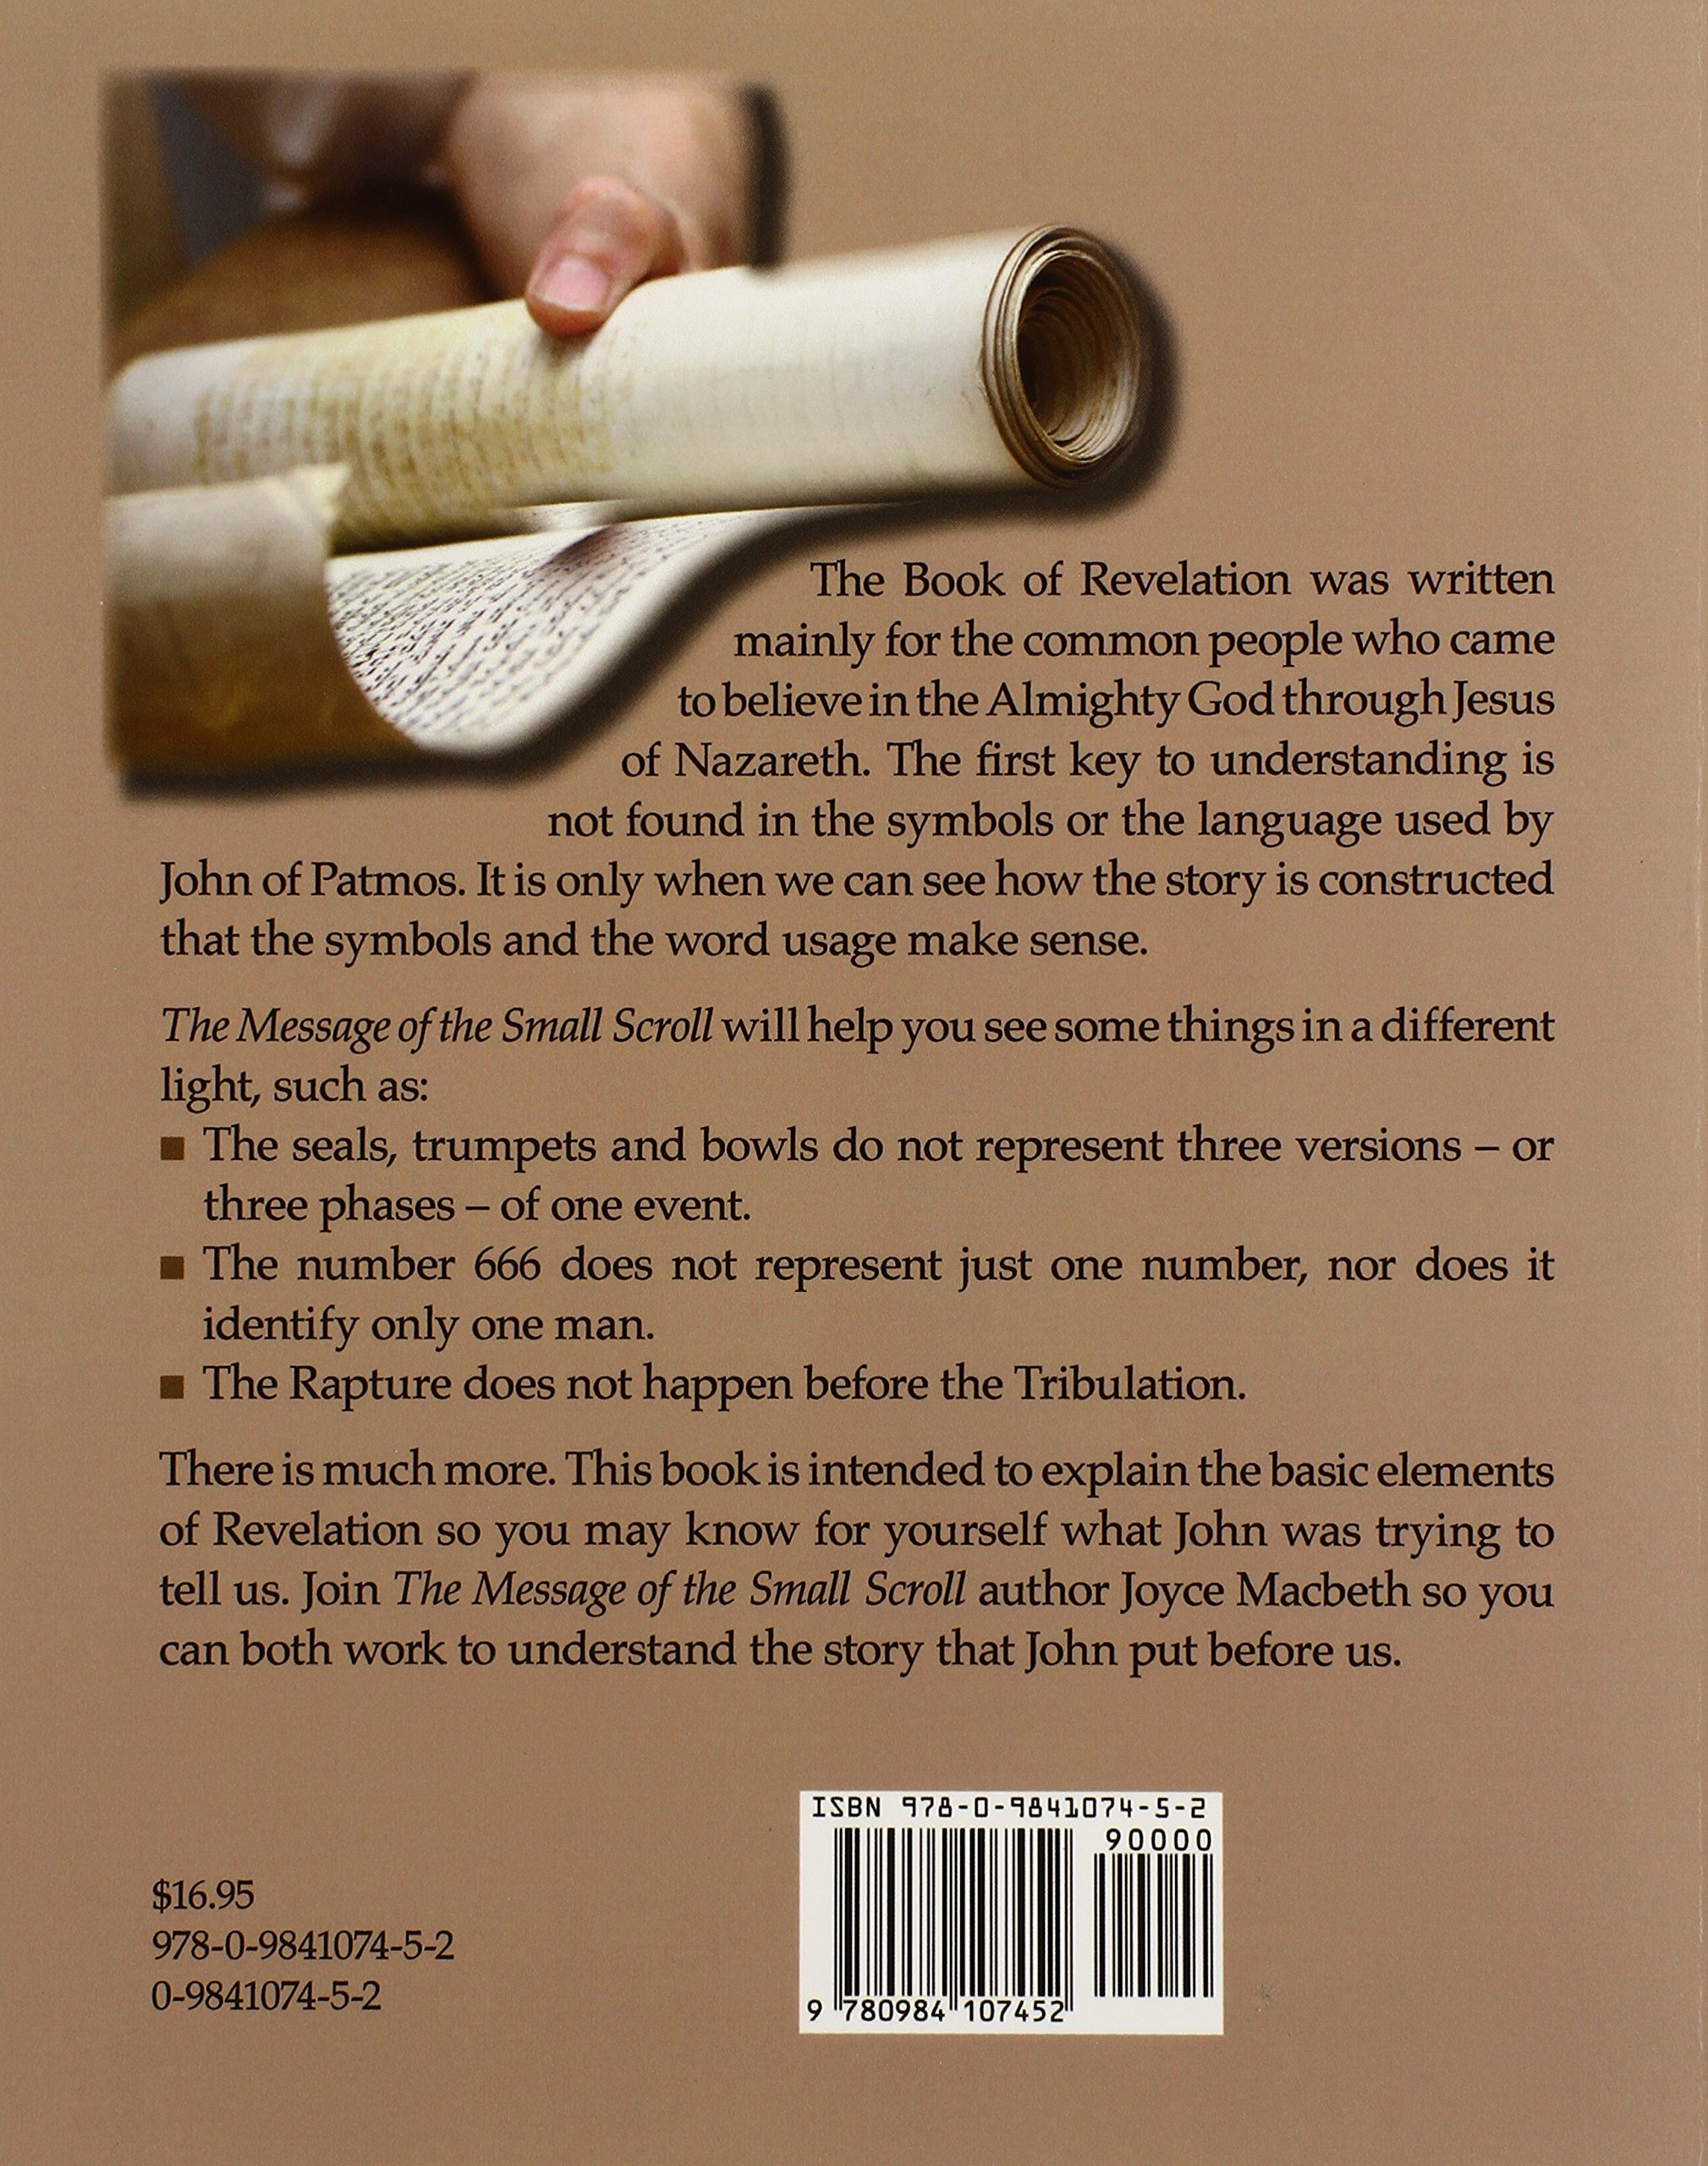 The secret of the small scroll a book about revelation joyce the secret of the small scroll a book about revelation joyce macbeth 9780984107452 amazon books buycottarizona